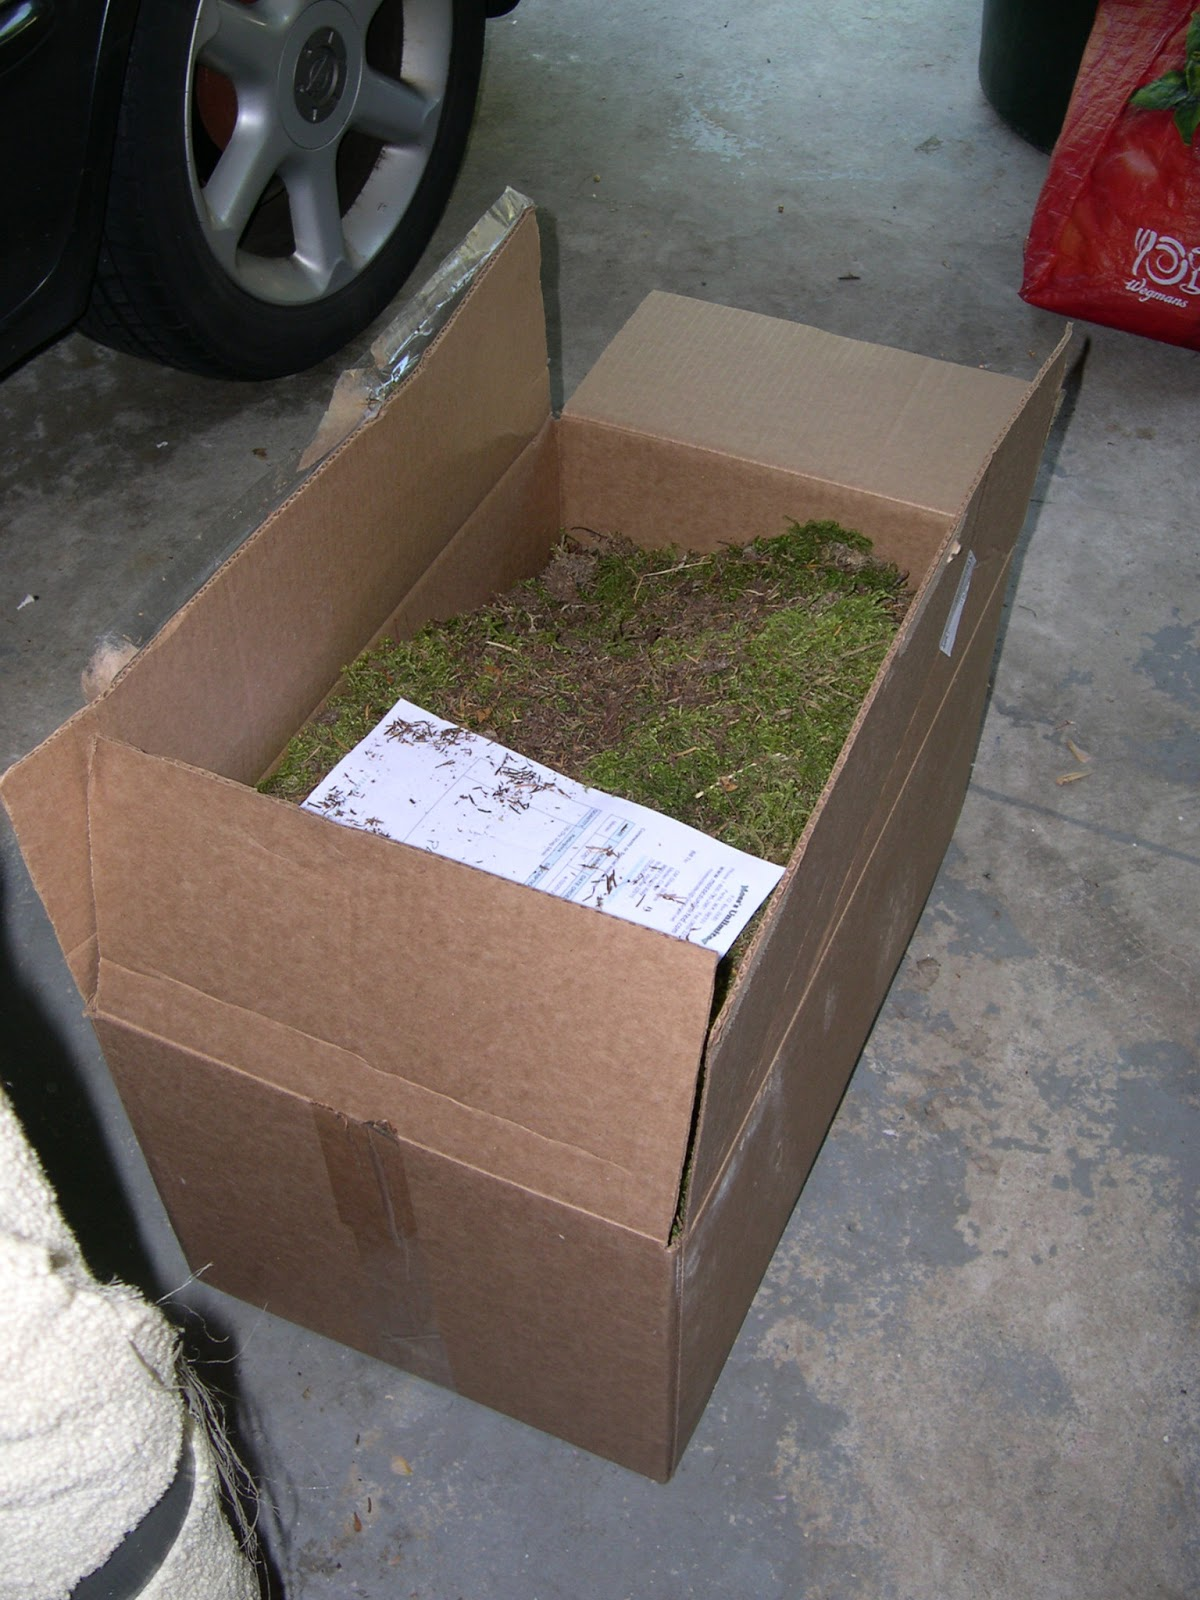 http://www.cmshawstudios.blogspot.com/2013/03/how-to-decorate-with-dry-moss.html